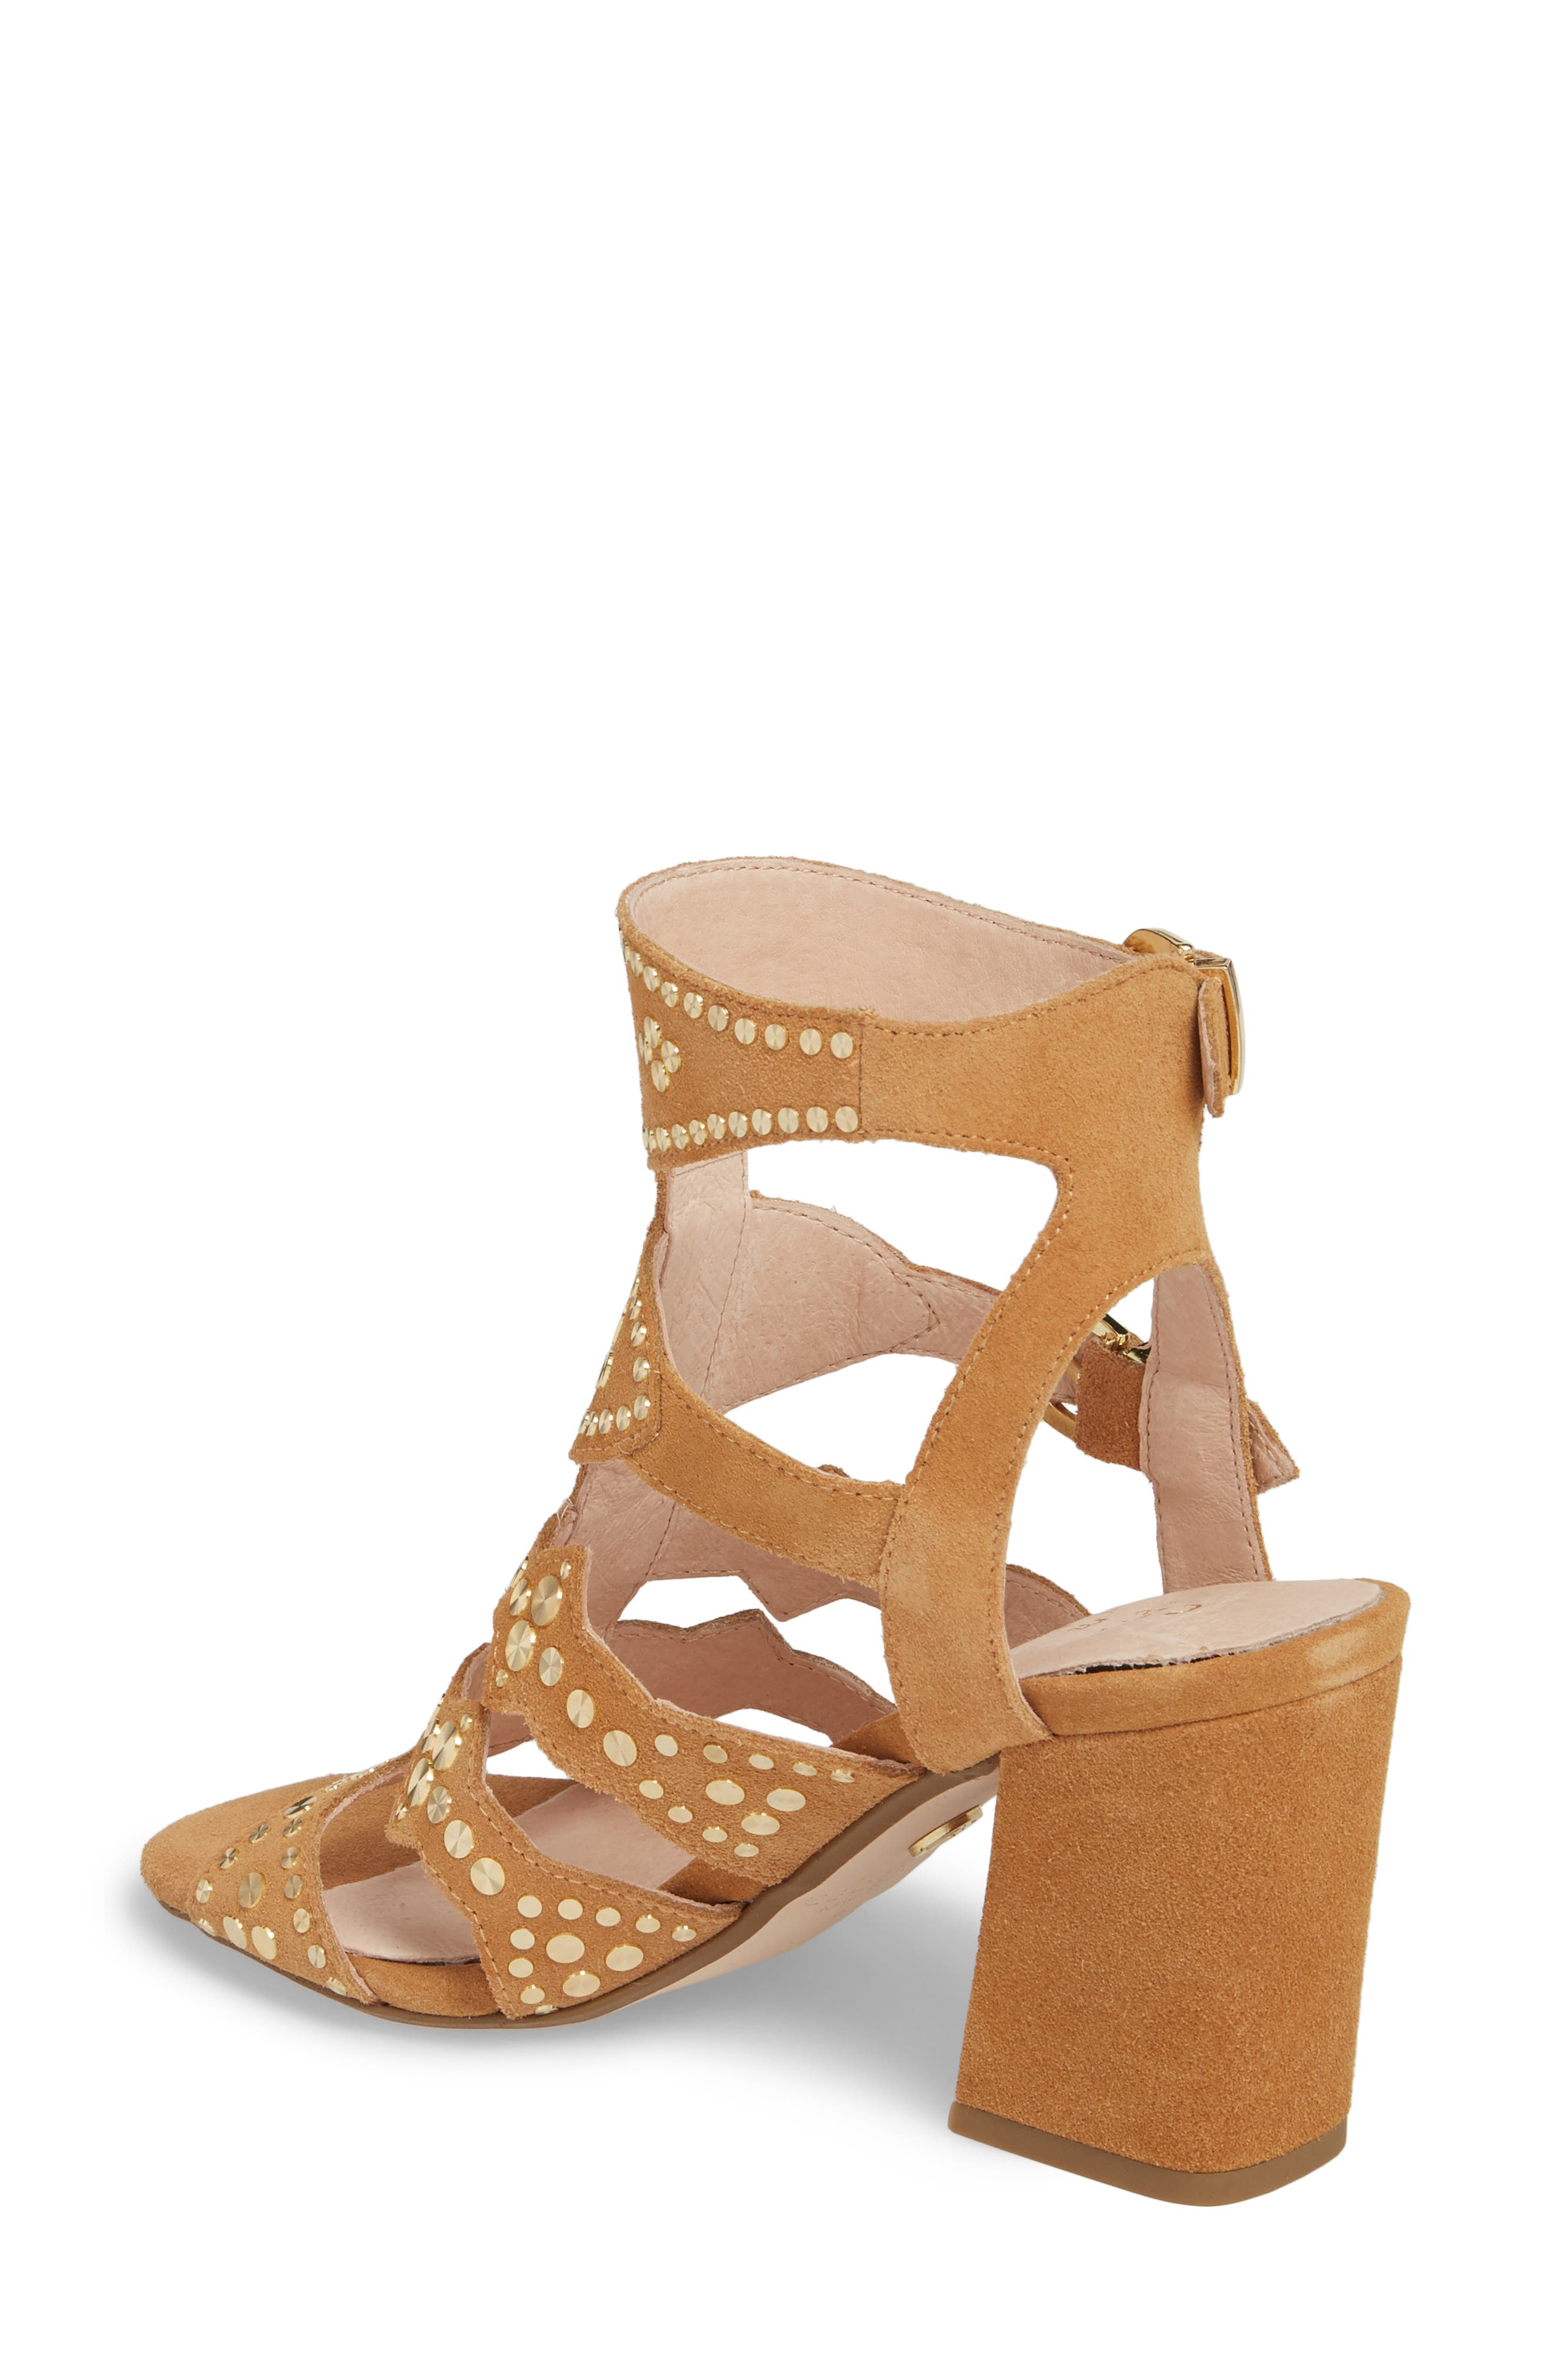 Cosmo Studded Sandal,                             Alternate thumbnail 2, color,                             Sand Suede